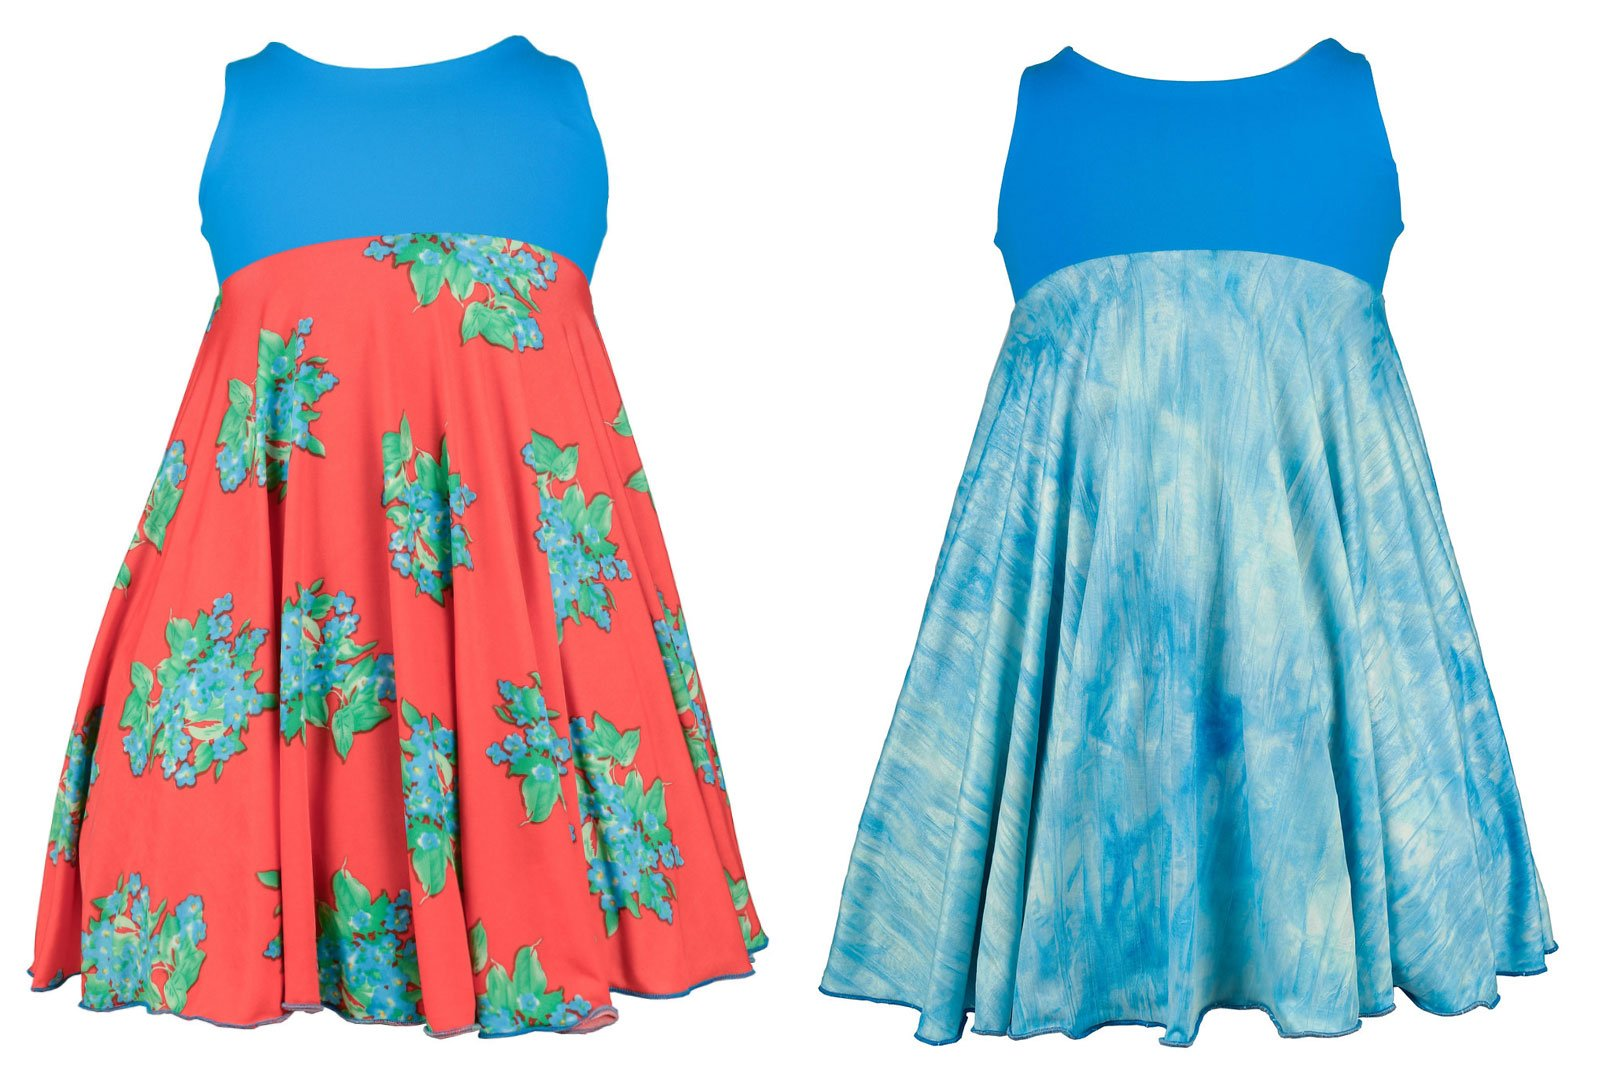 Spinning Tales Forever Blossoms Spin Dress - Reversible (2/3)